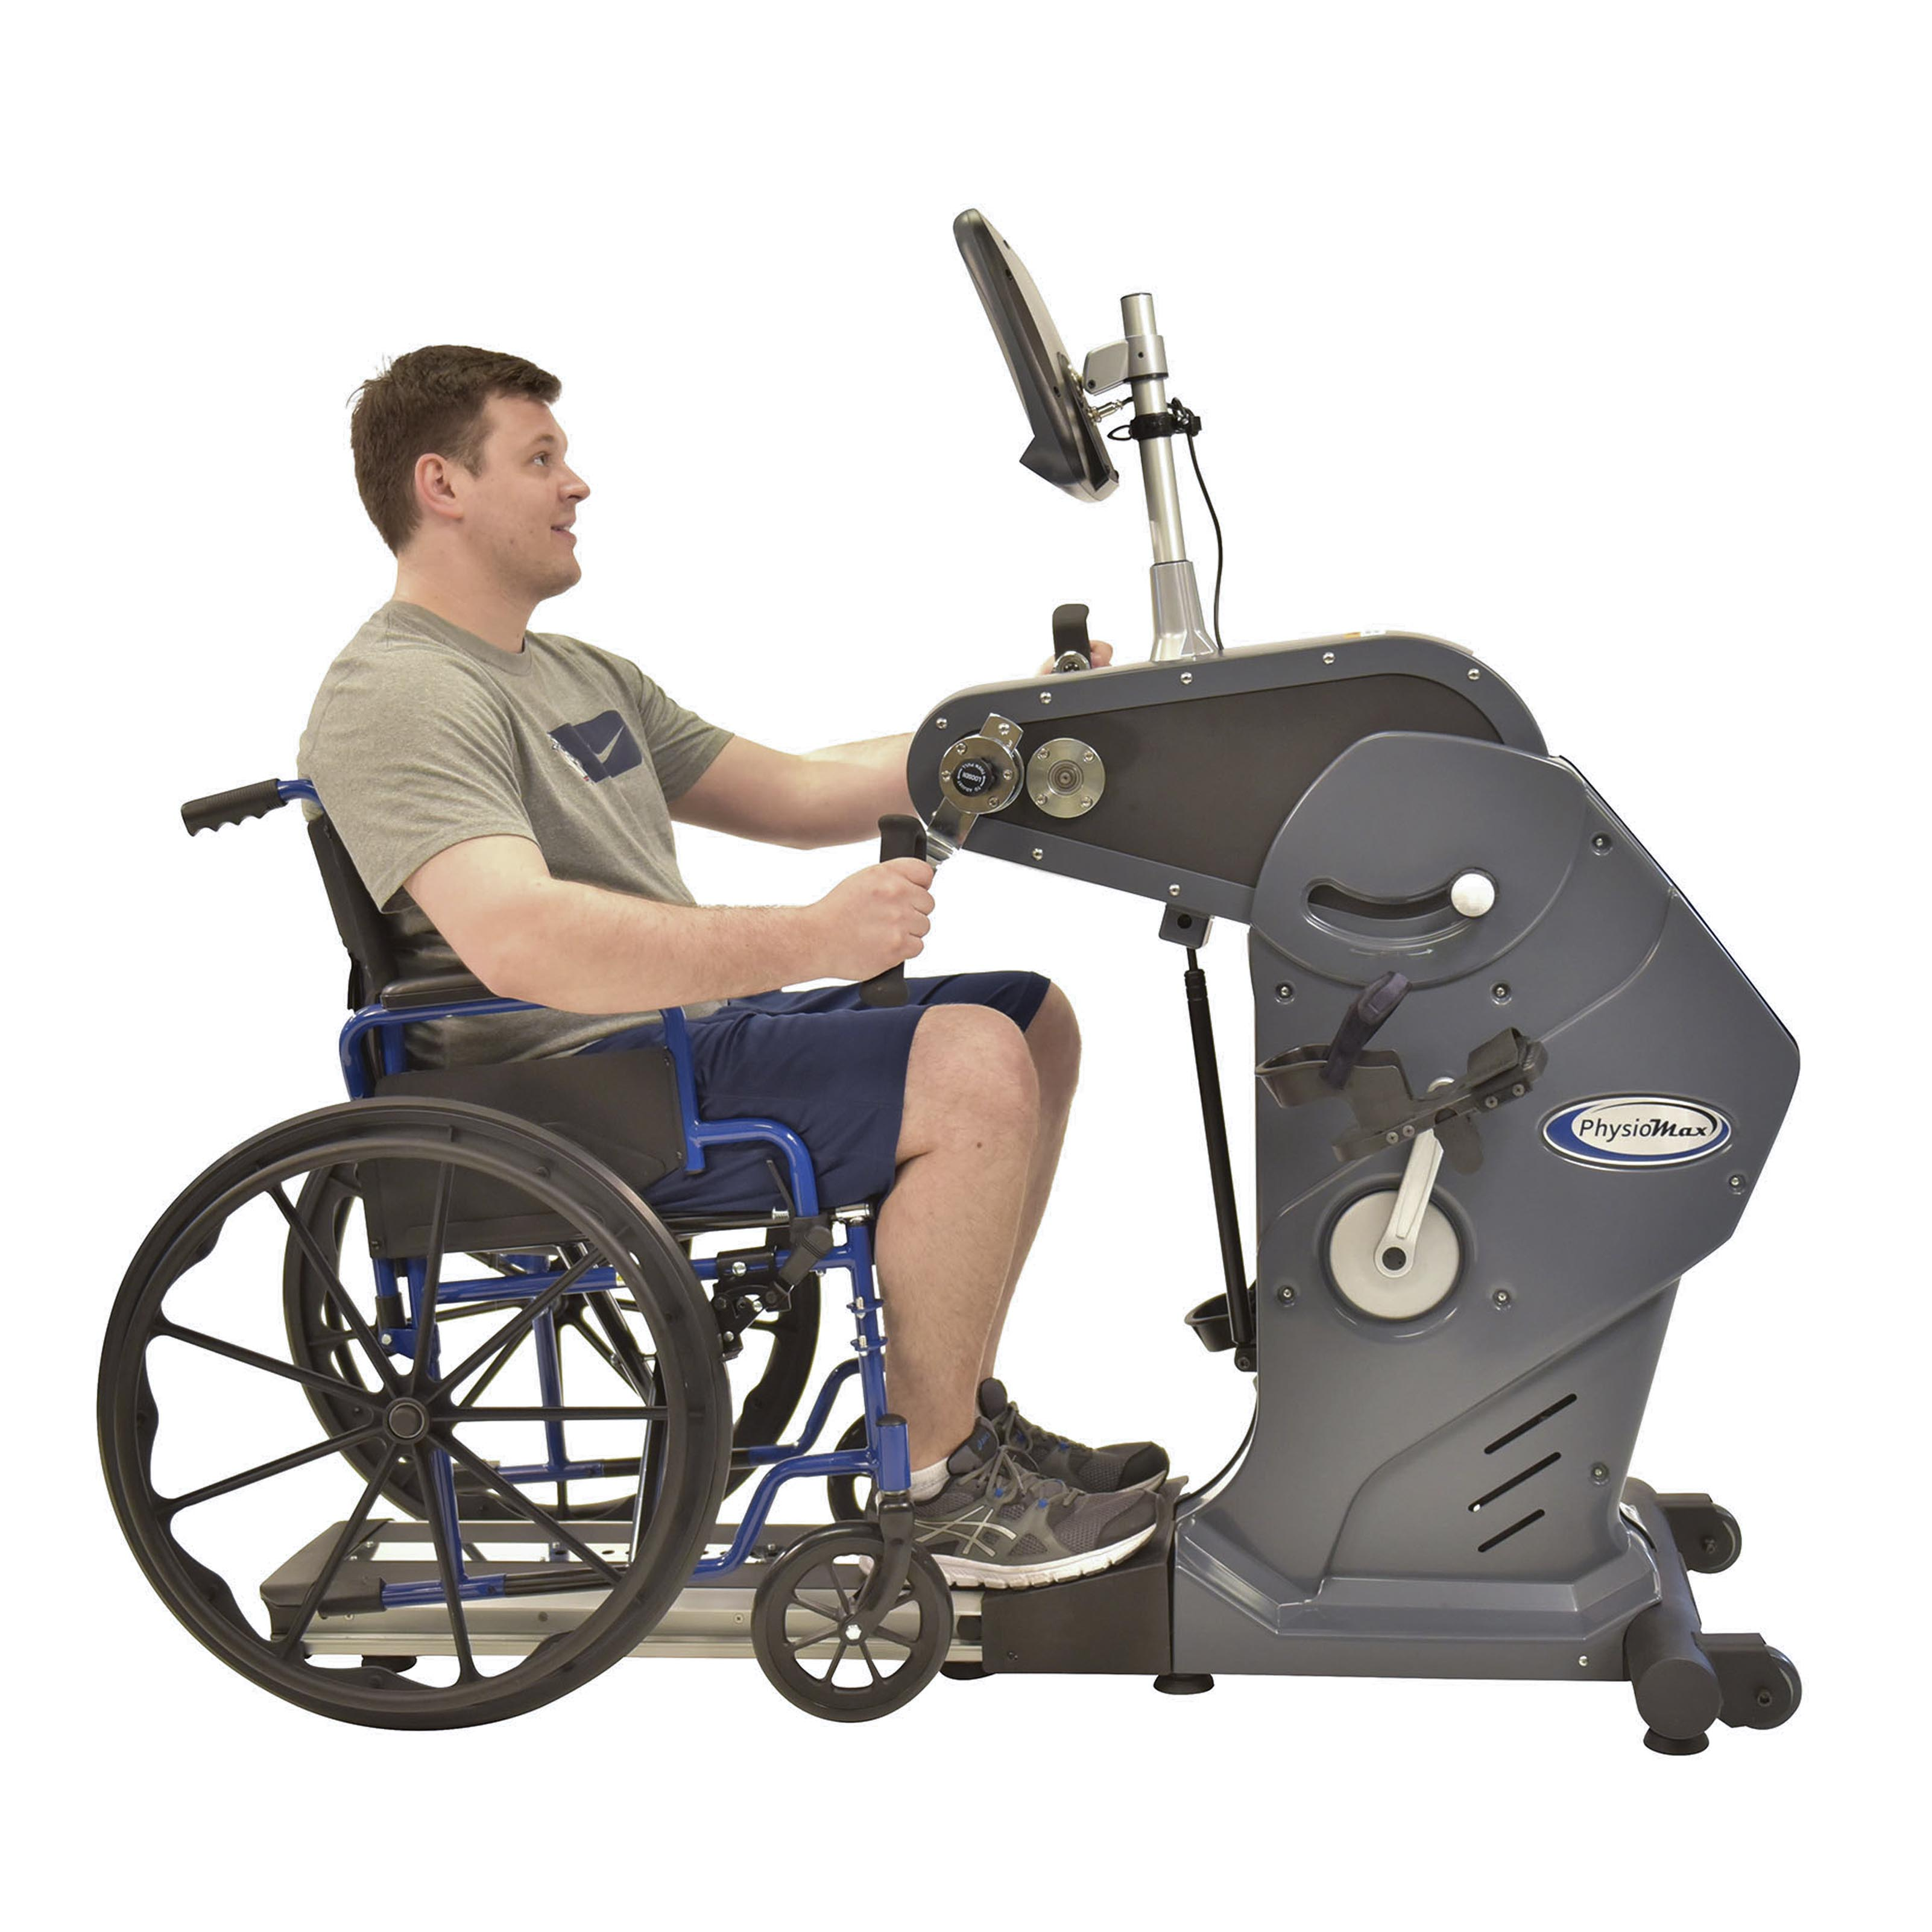 PhysioMax Total Body Trainer Wheelchair Model